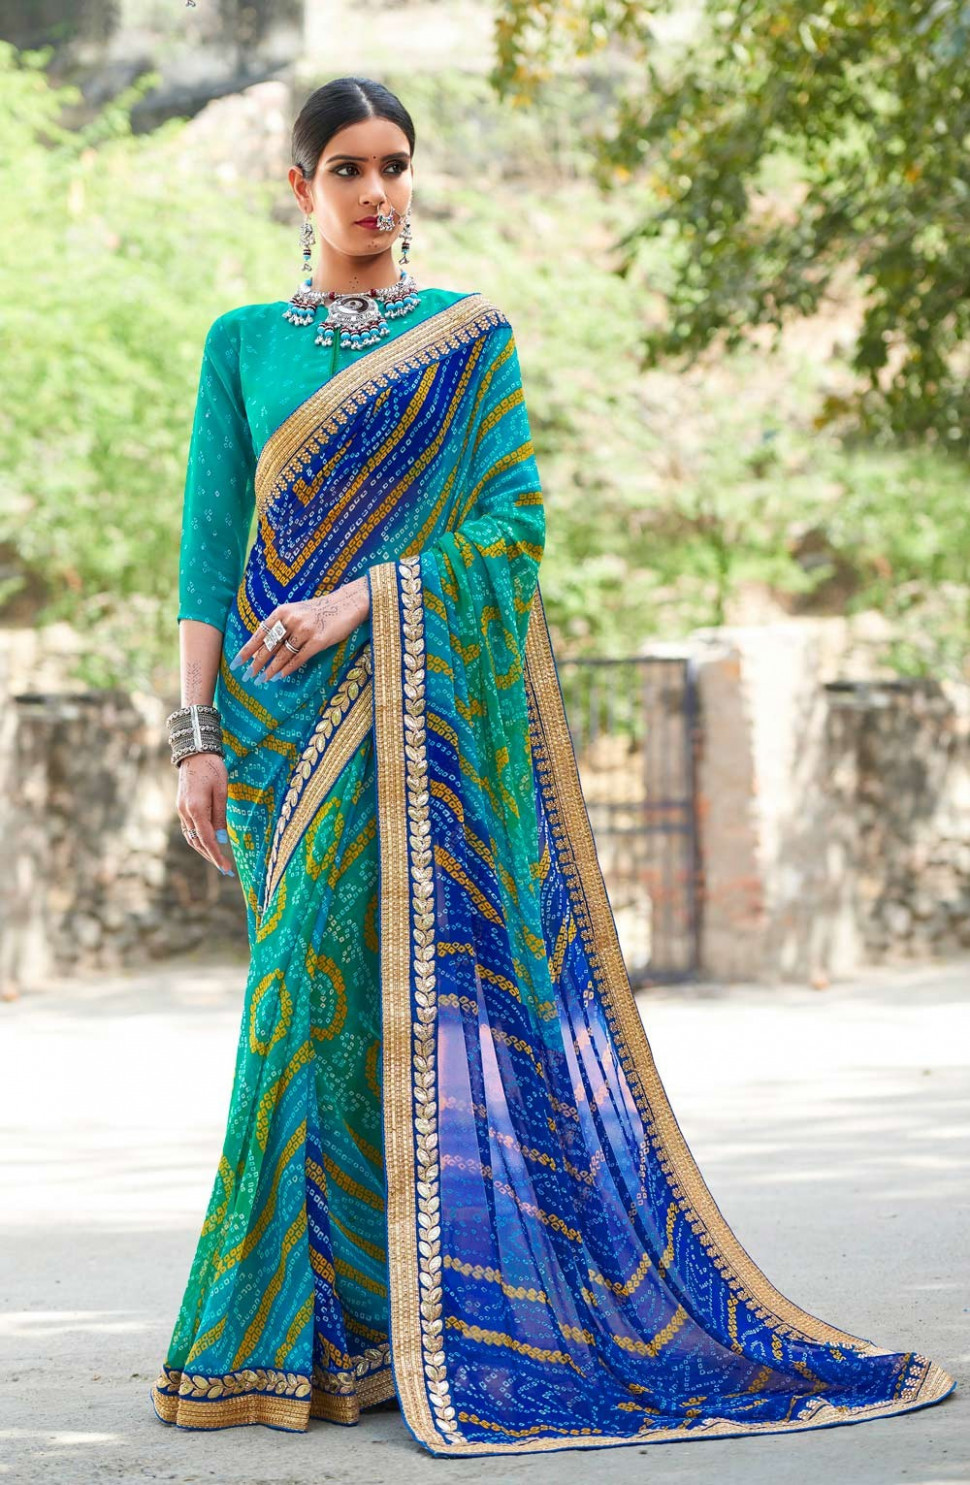 20 Types Of Sarees For Every Woman To Rock Festive Season